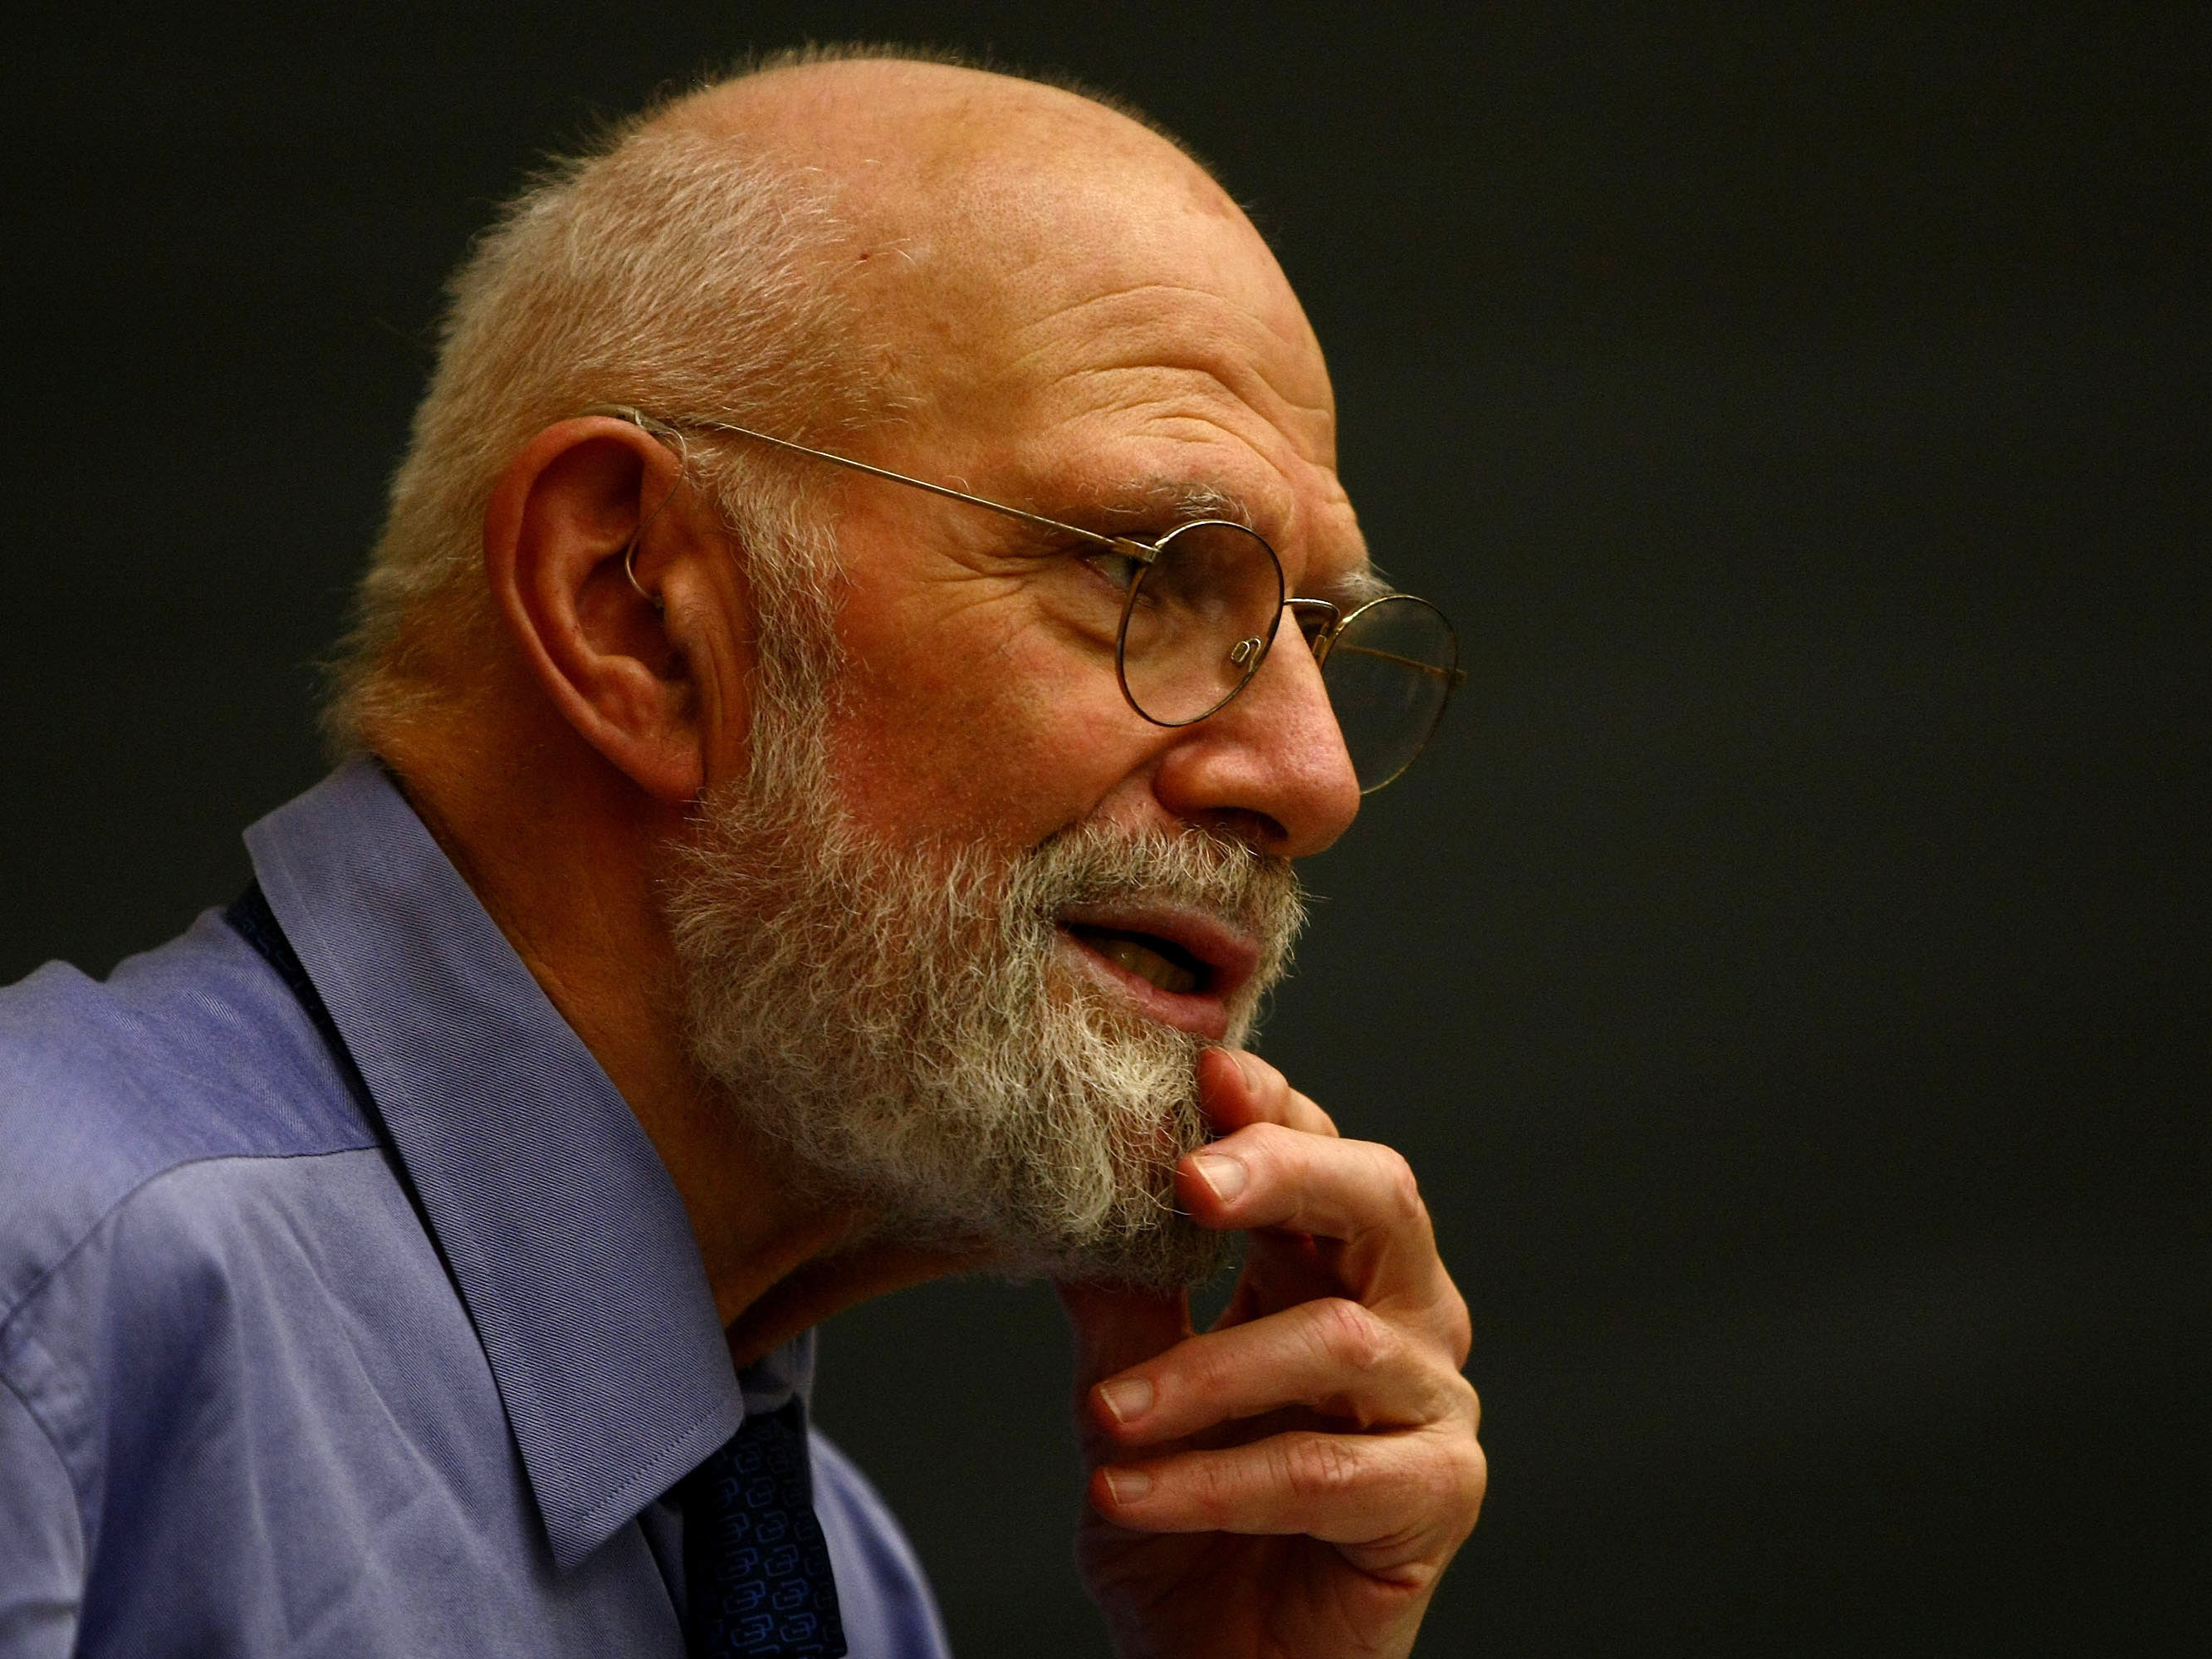 Oliver Sacks, Renowned Neurologist And Author, Dies At 82